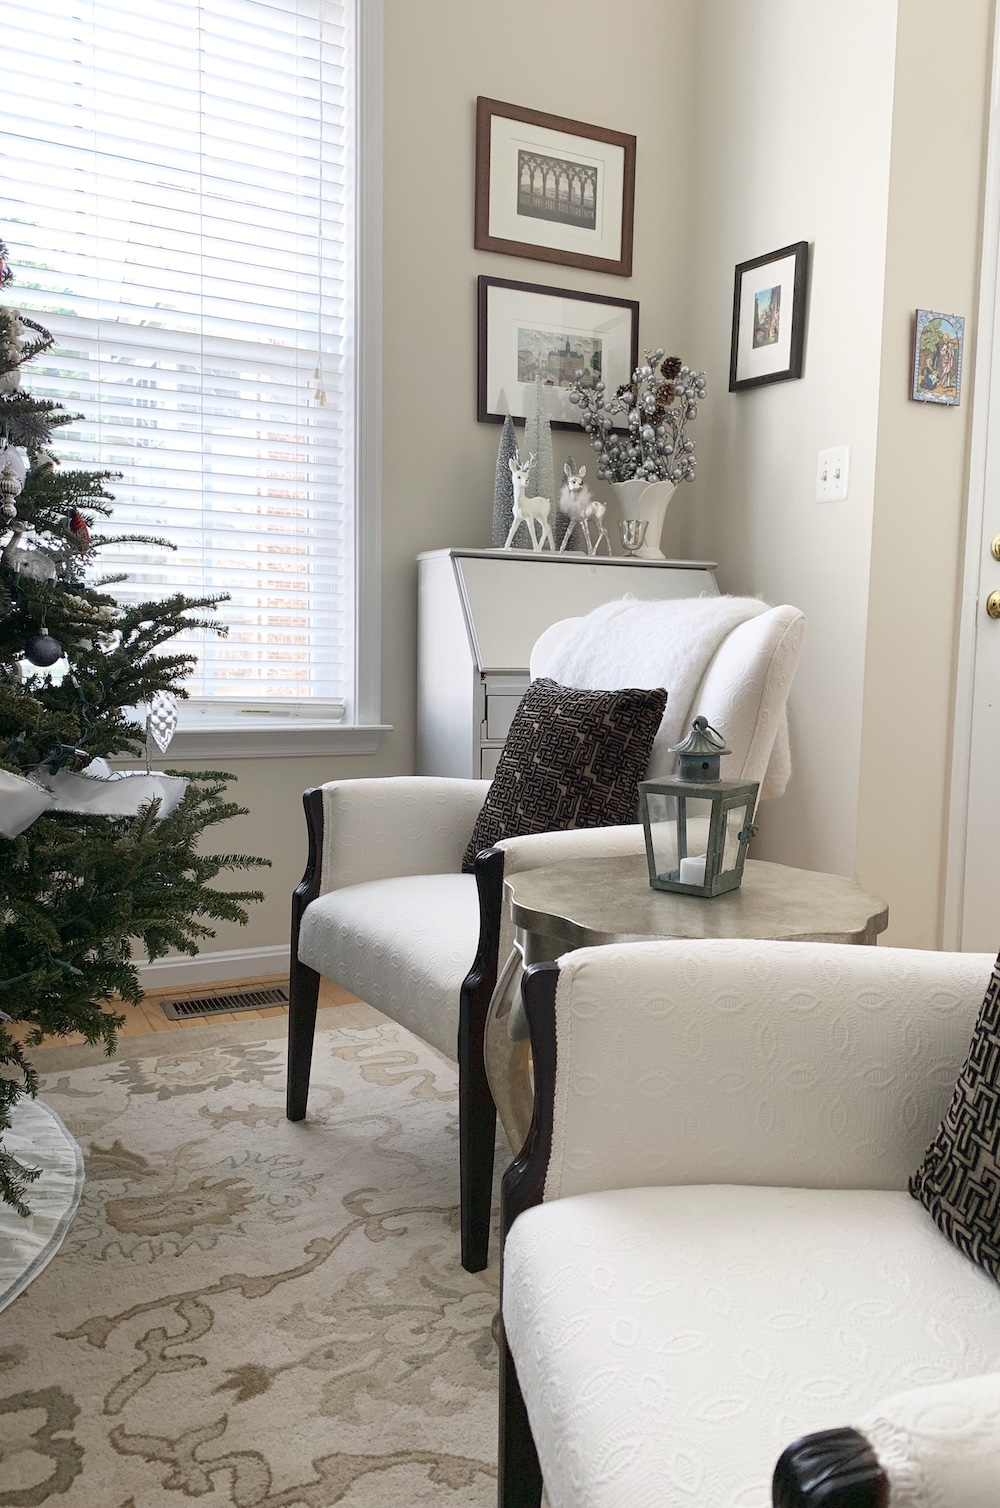 Christmas Home For Holidays #Winter #Affordable #BudgetFriendly #Christmas #DIY #ChristmasDecor #Decor